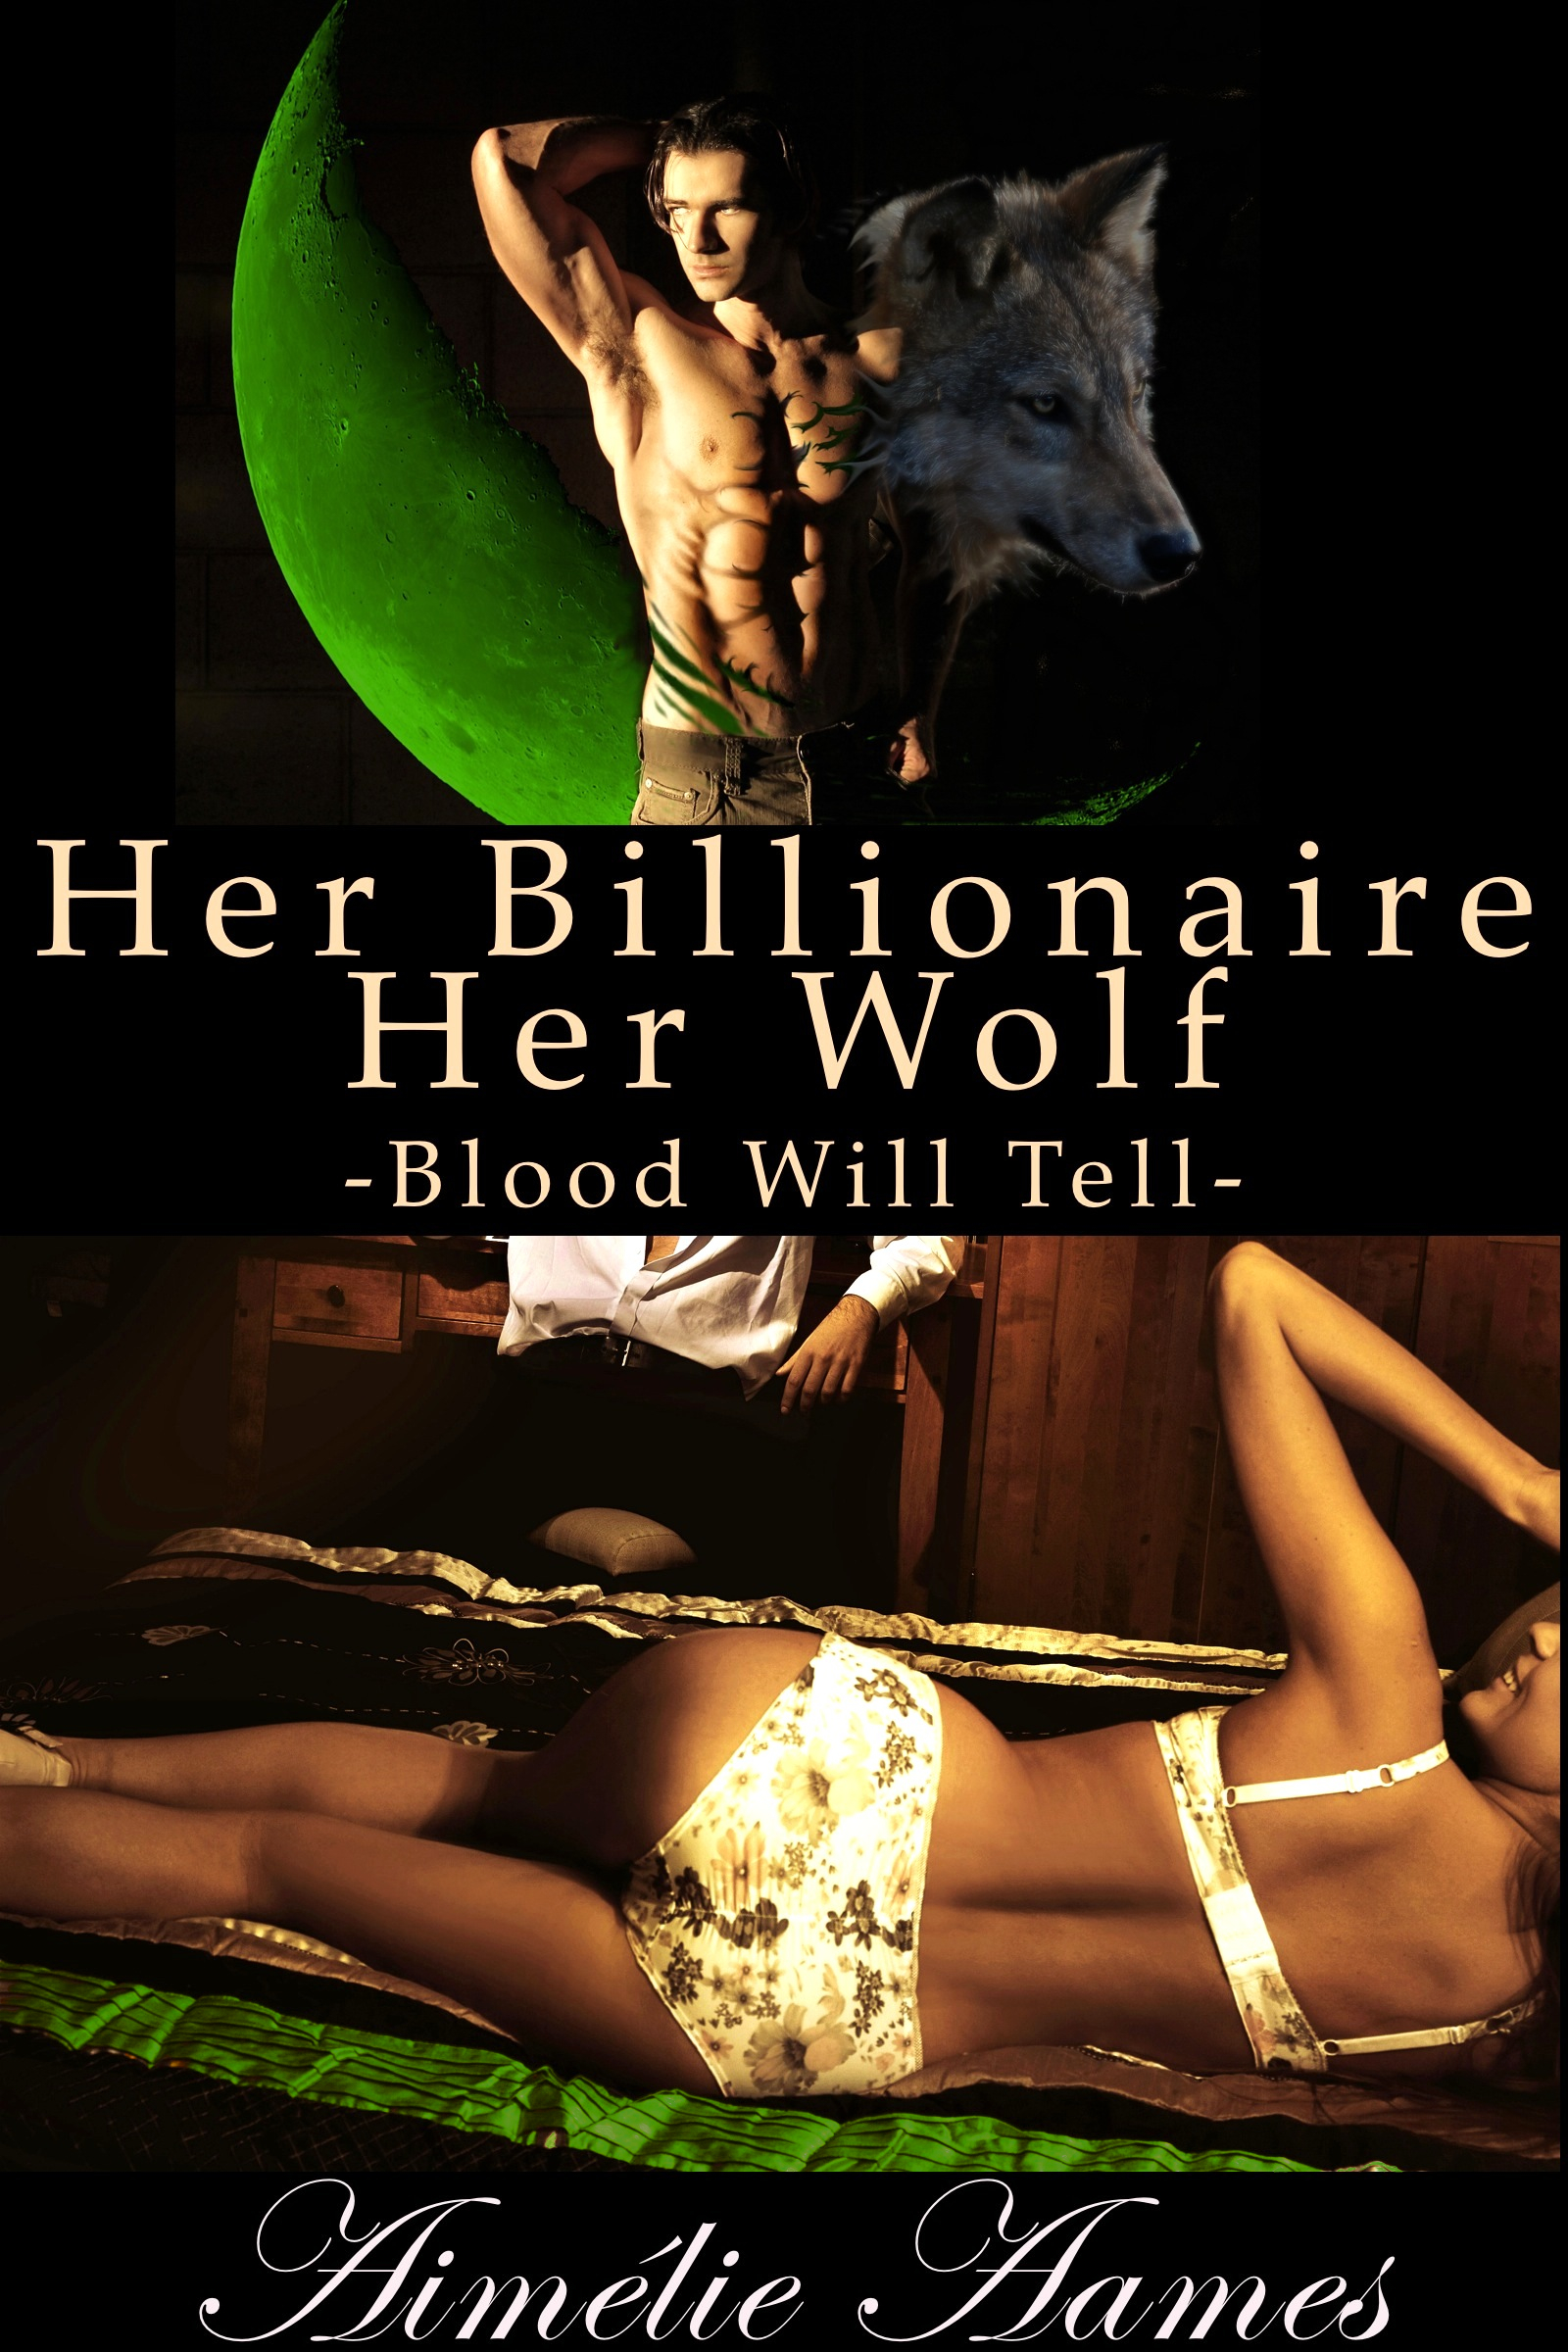 Her Billionaire, Her Wolf--Blood Will Tell (A Paranormal BDSM Erotic Romance)